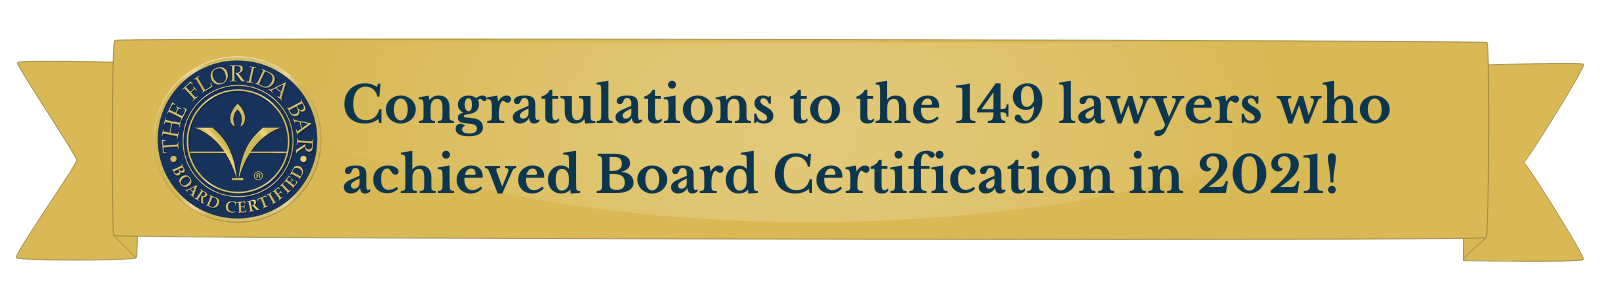 Congratulations to the 149 lawyers who achieved Board Certification in 2021! (3)